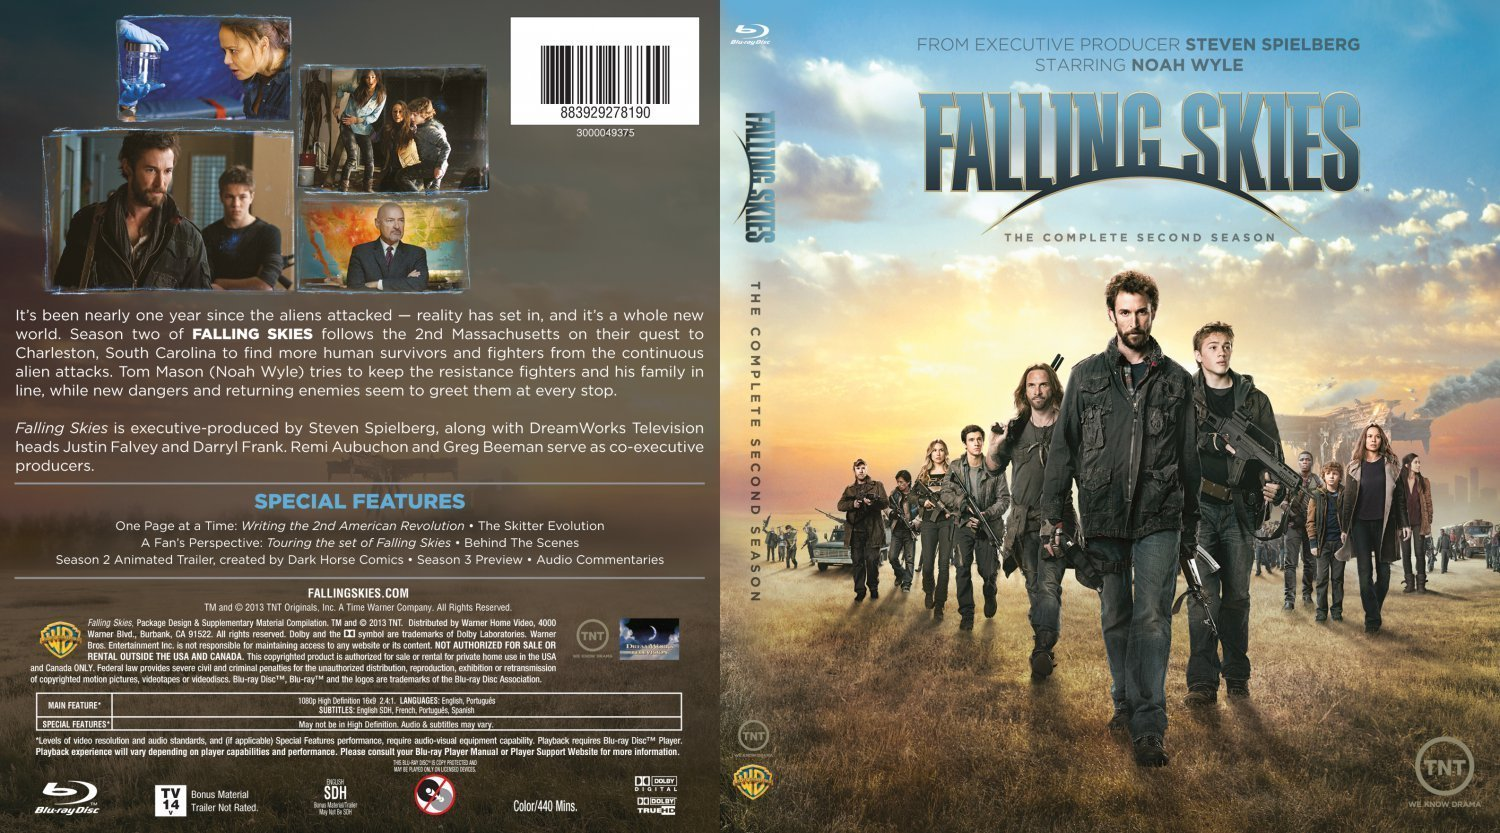 3 temporada falling skies dublado online dating 10